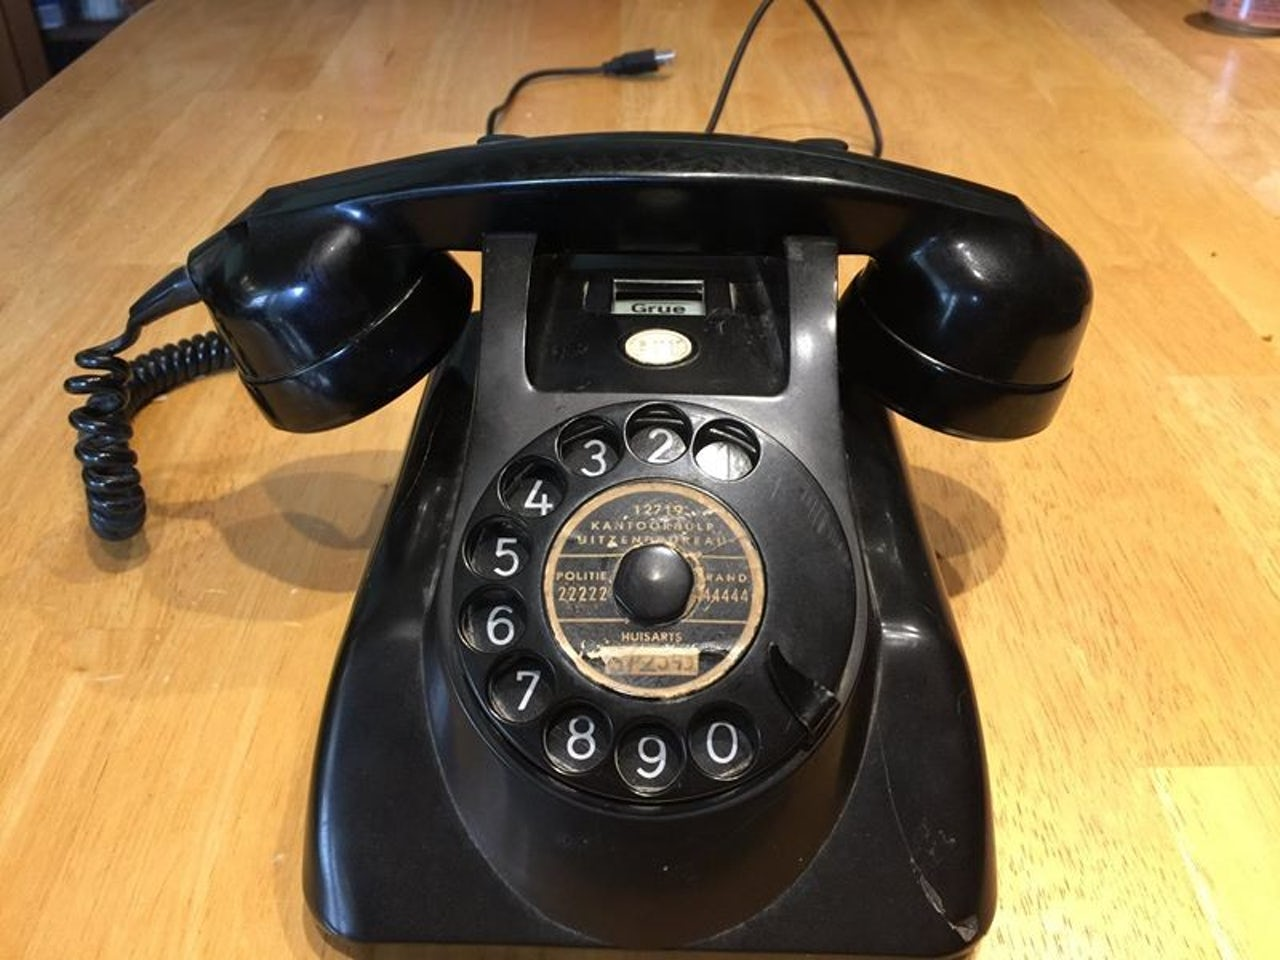 An engineer rigged a rotary phone to play a text adventure